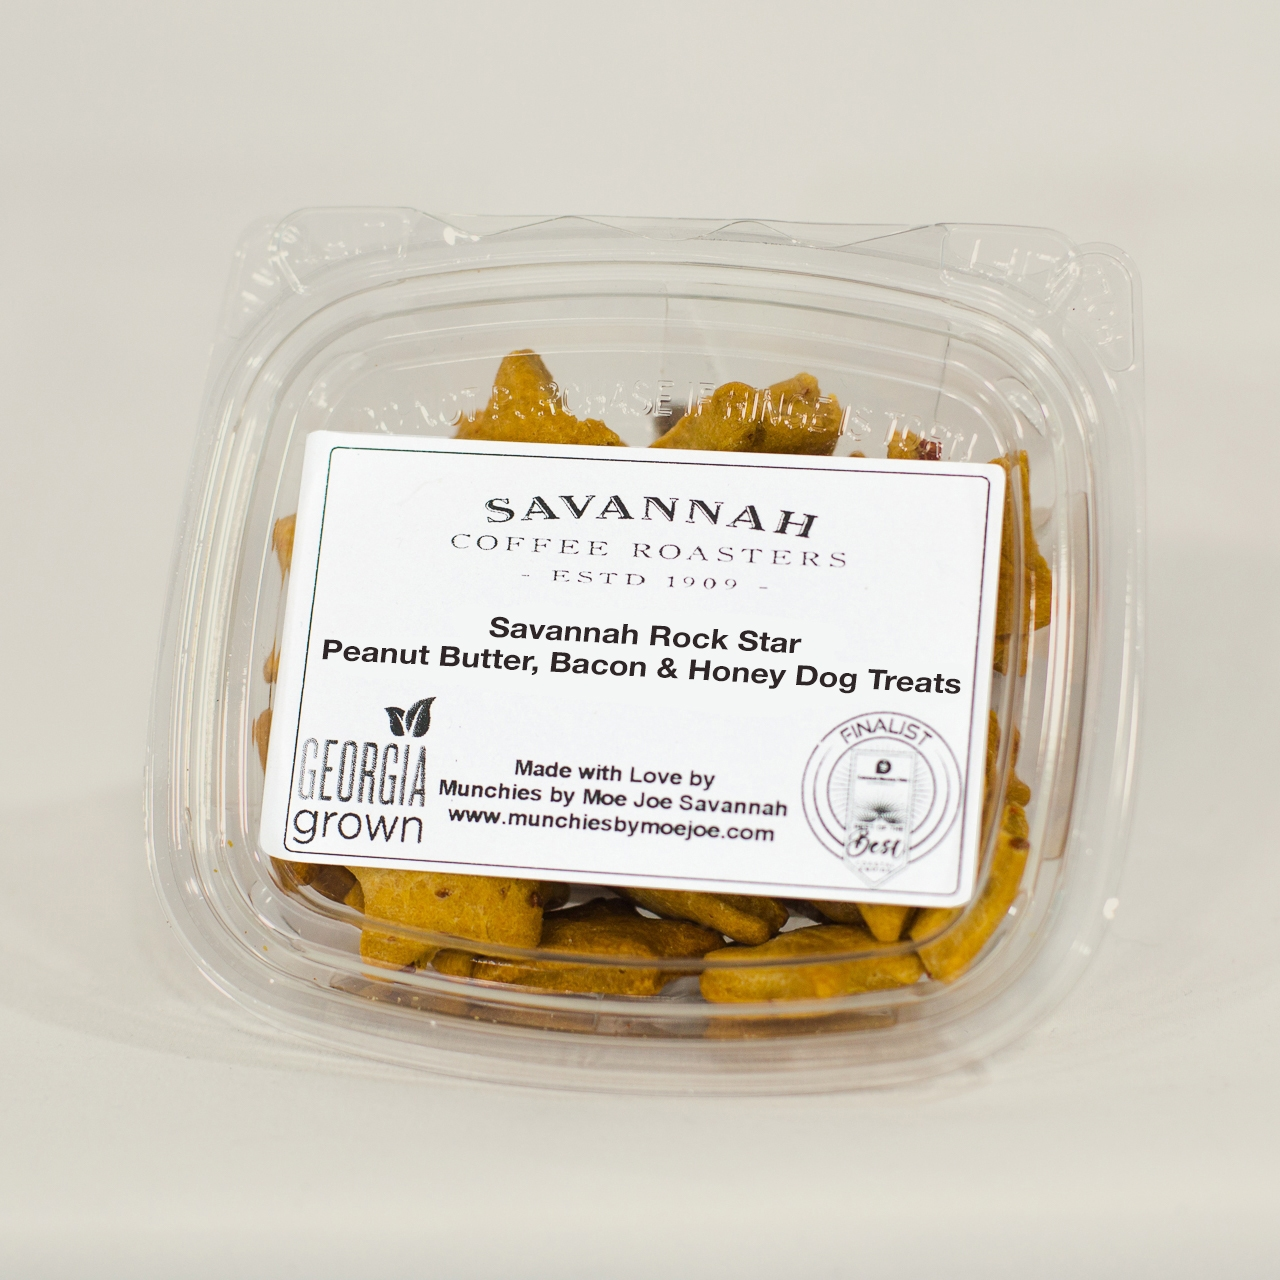 Savannah Rock Star Peanut Butter and Honey Dog Treats